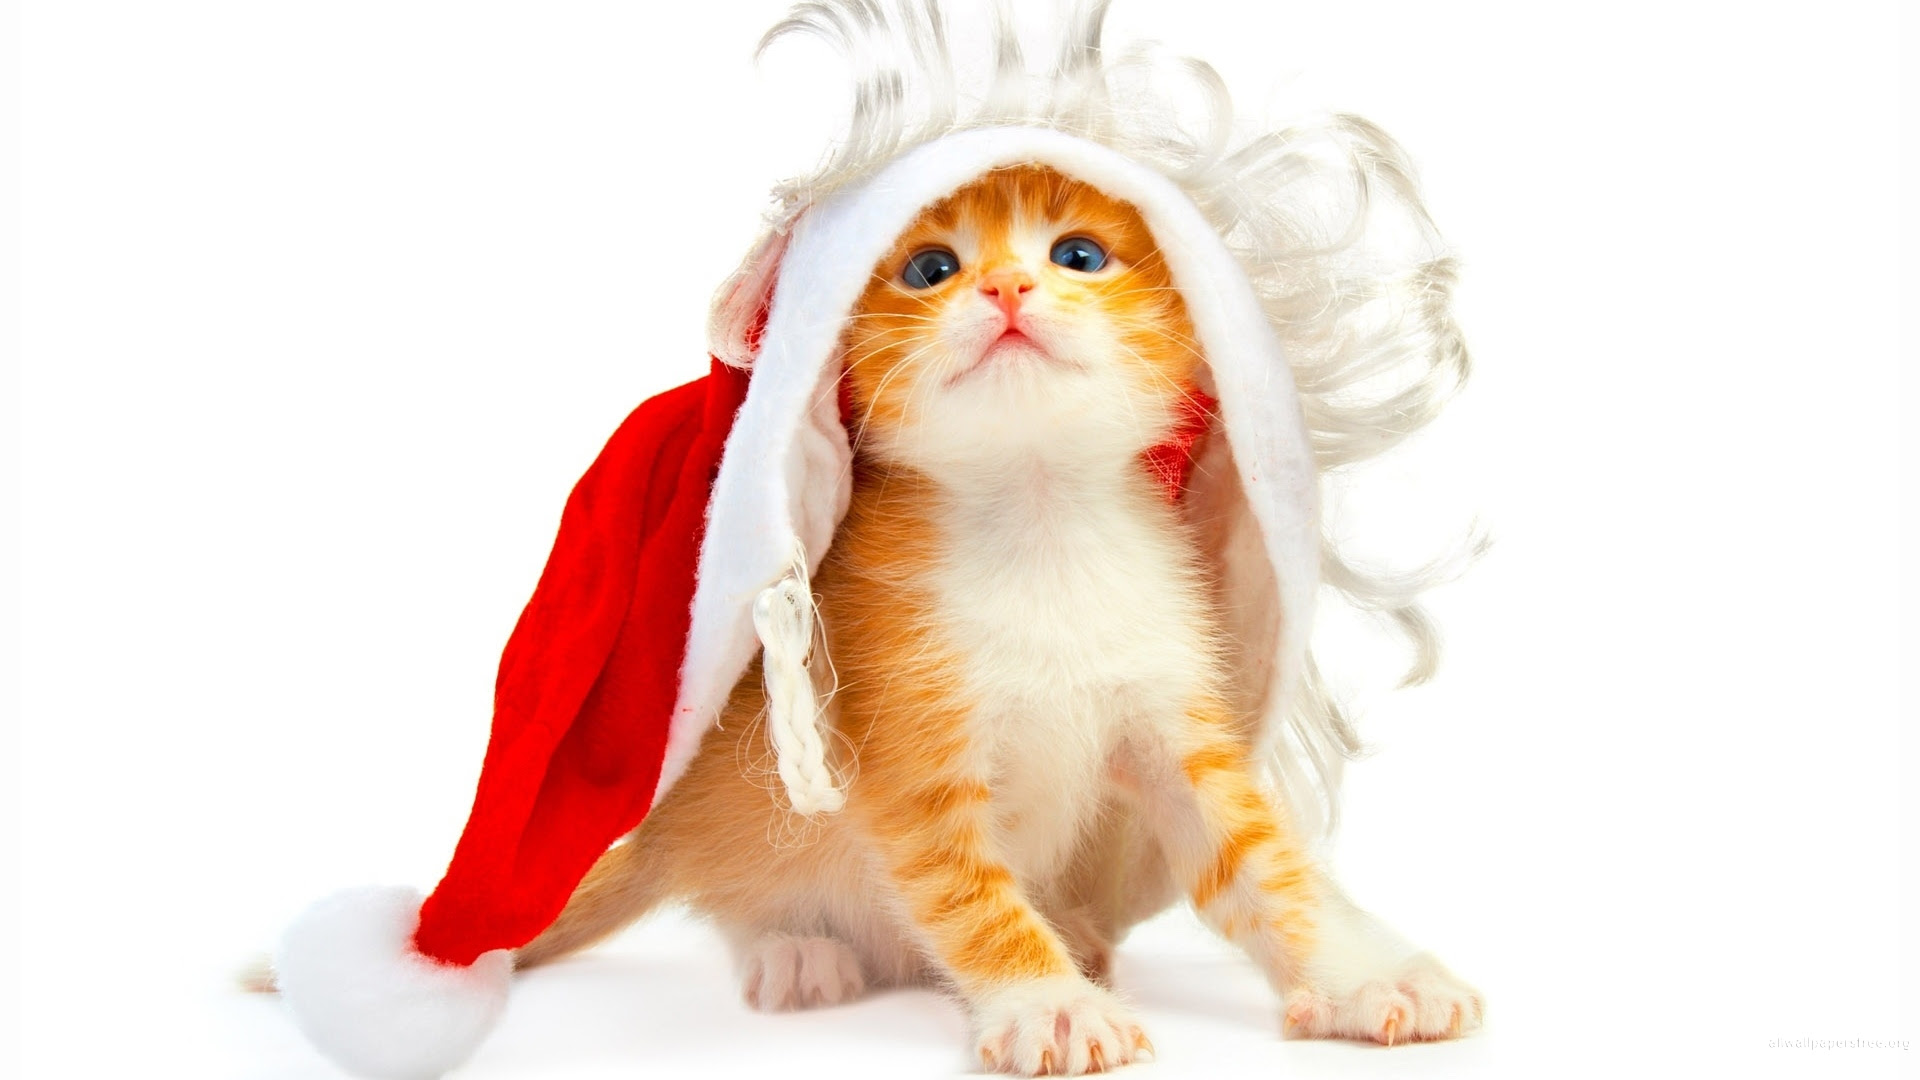 Cat In The Hat Wallpapers Free Download On Clipartmag